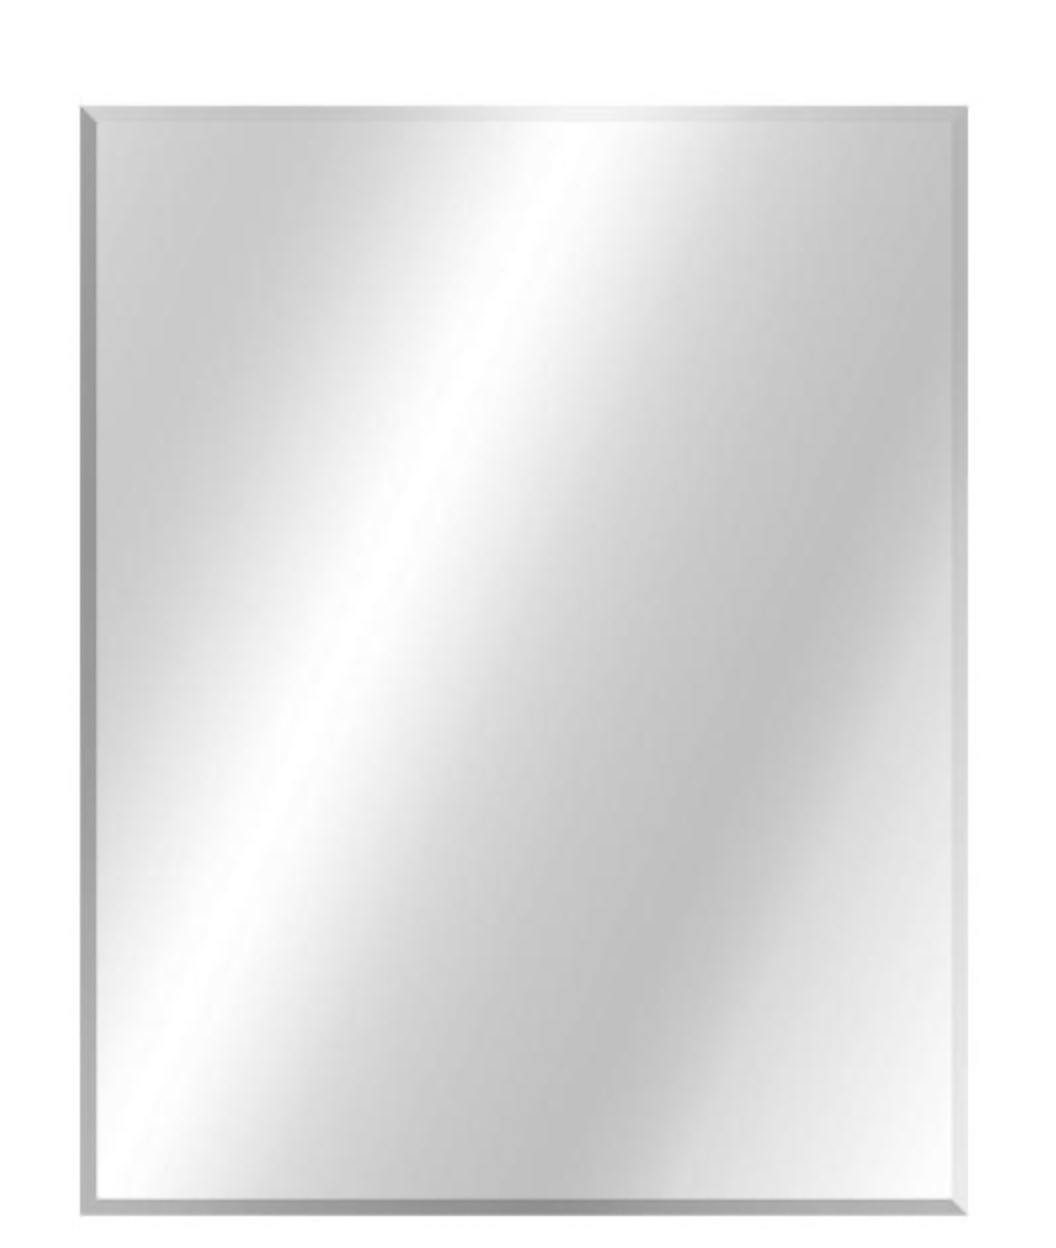 24 in. W x 30 in. H Frameless Rectangular Beveled Edge Bathroom Vanity Mirror in Silver